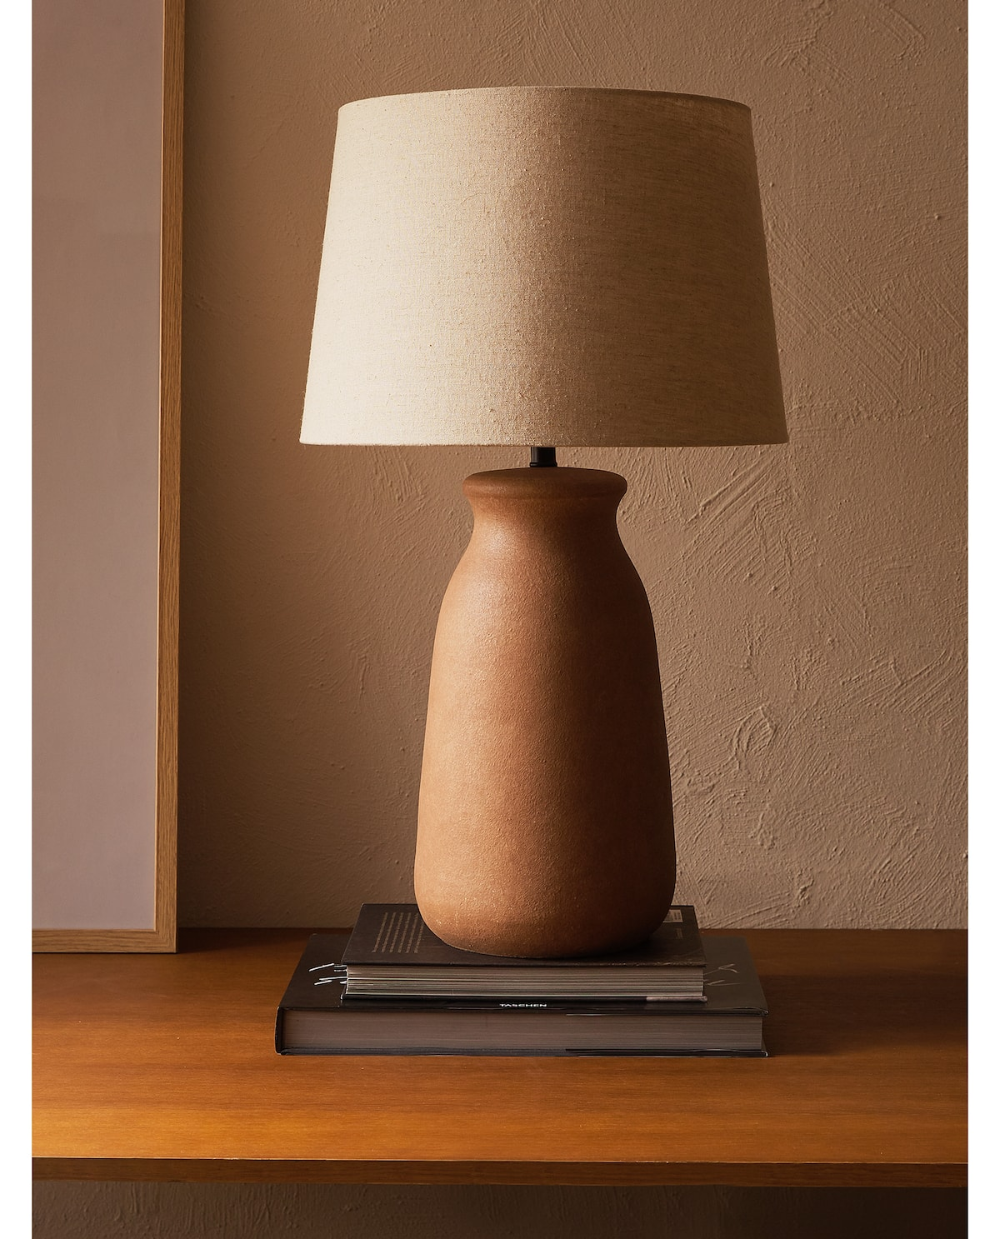 Image 6 of the product LAMP WITH EARTHENWARE BASE in 2020 ...